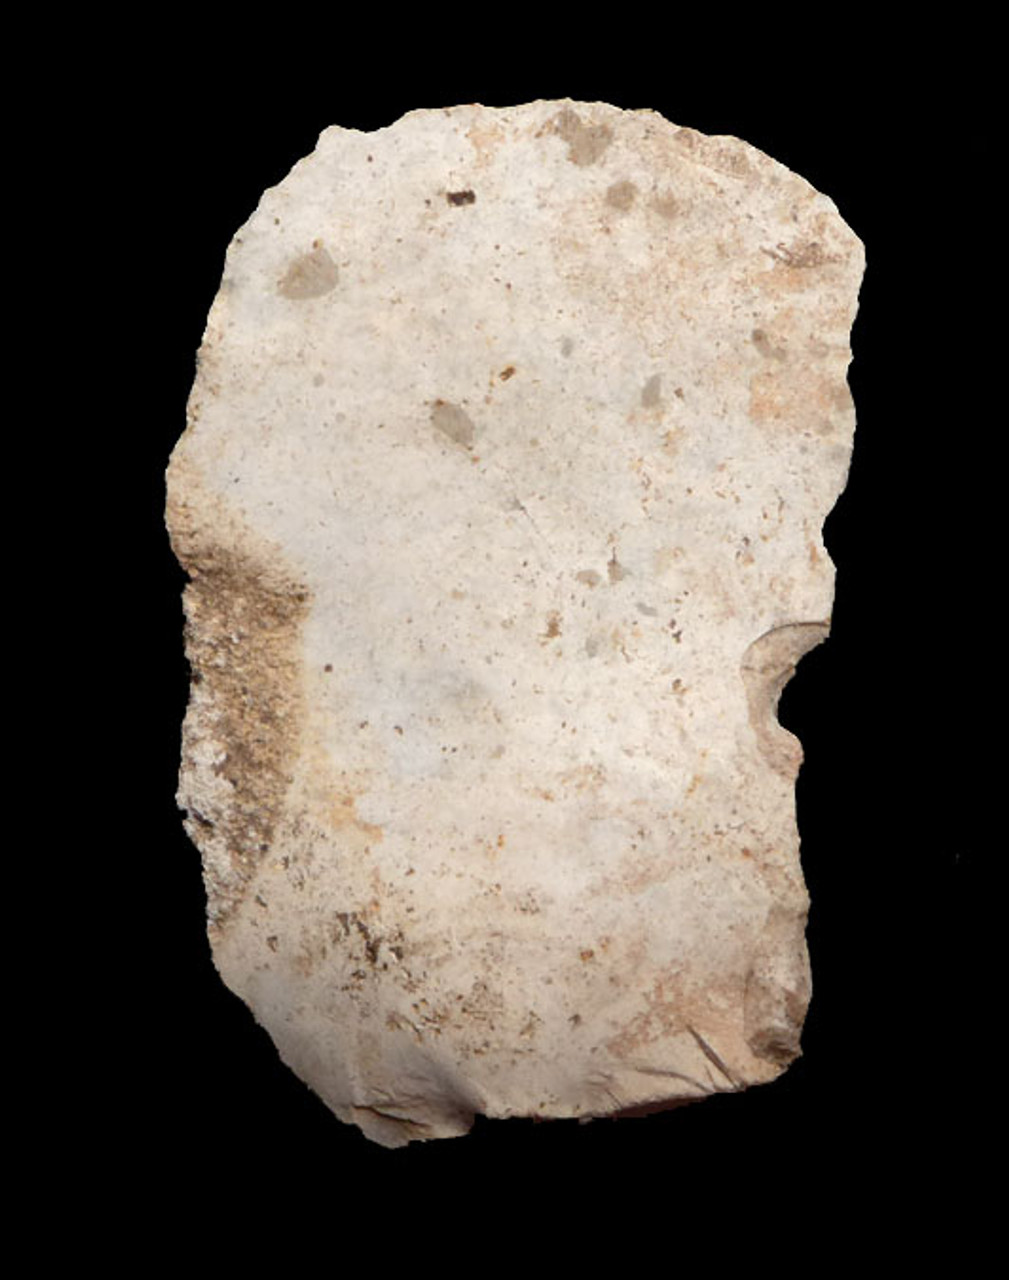 N155 - RARE OPPORTUNITY NEOLITHIC FLINT TOOL FROM AVEBURY THE LARGEST ANCIENT HENGE MONUMENT IN EUROPE WITH FAMOUS PROVENANCE